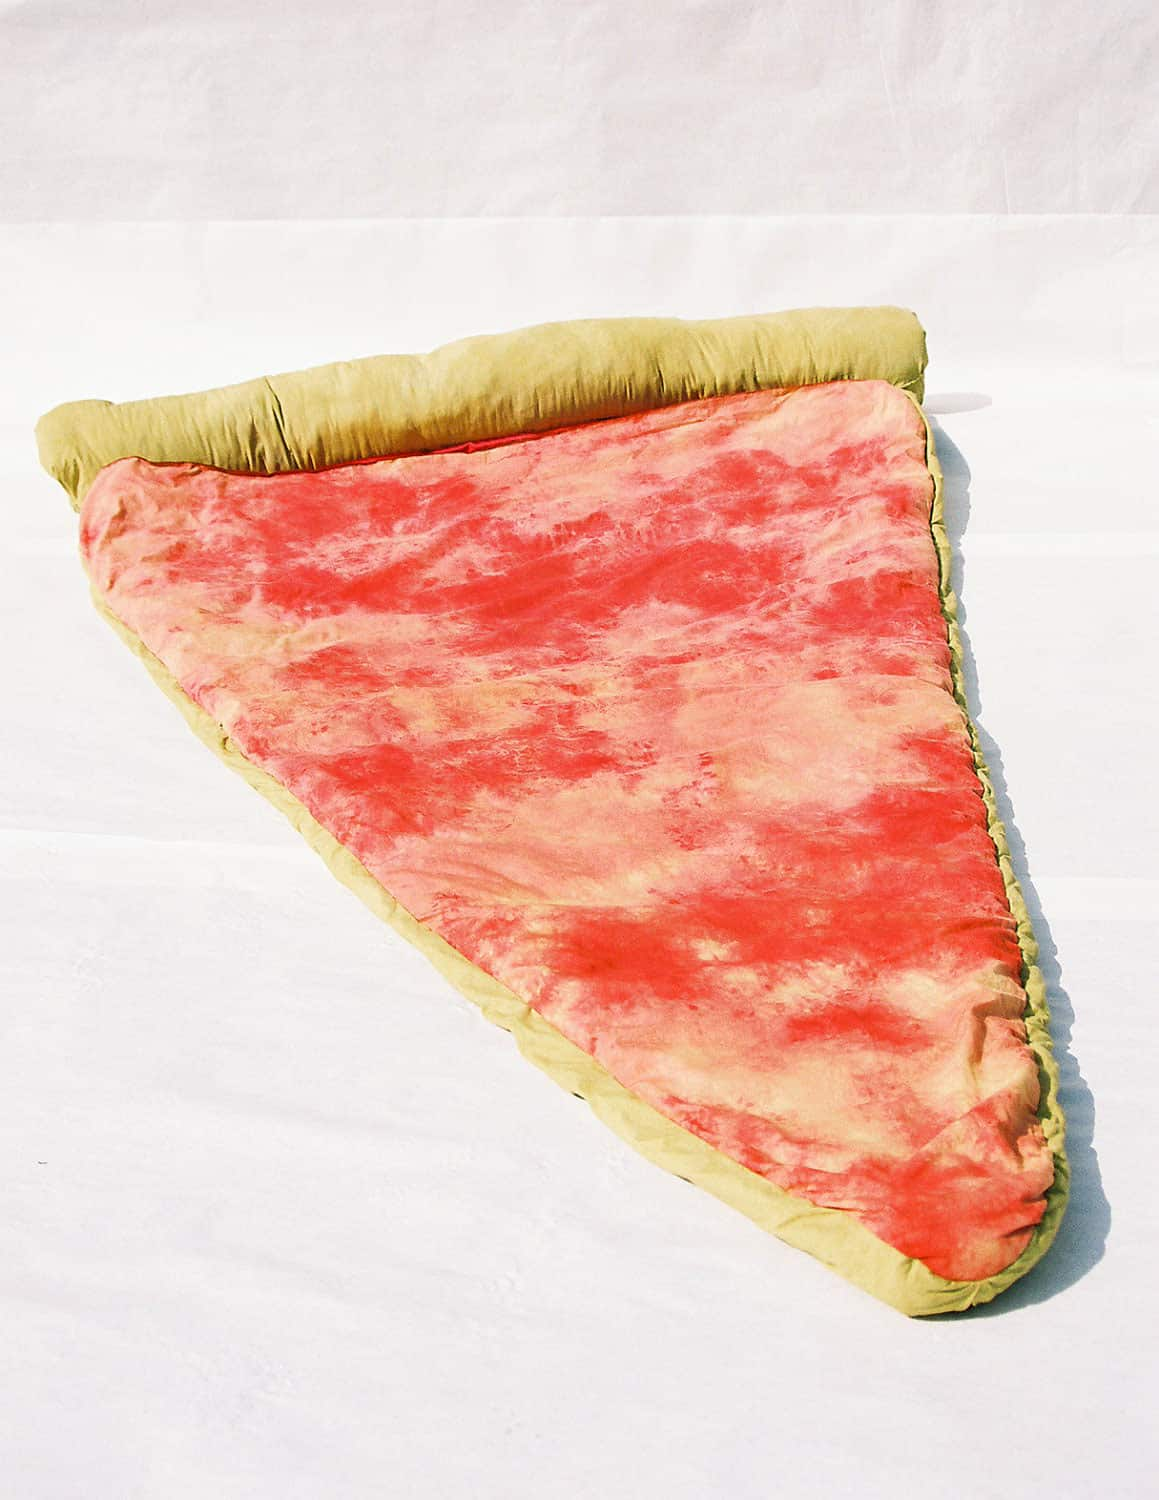 B Fiber and Craft Pizza Sleeping Bag No Toppings